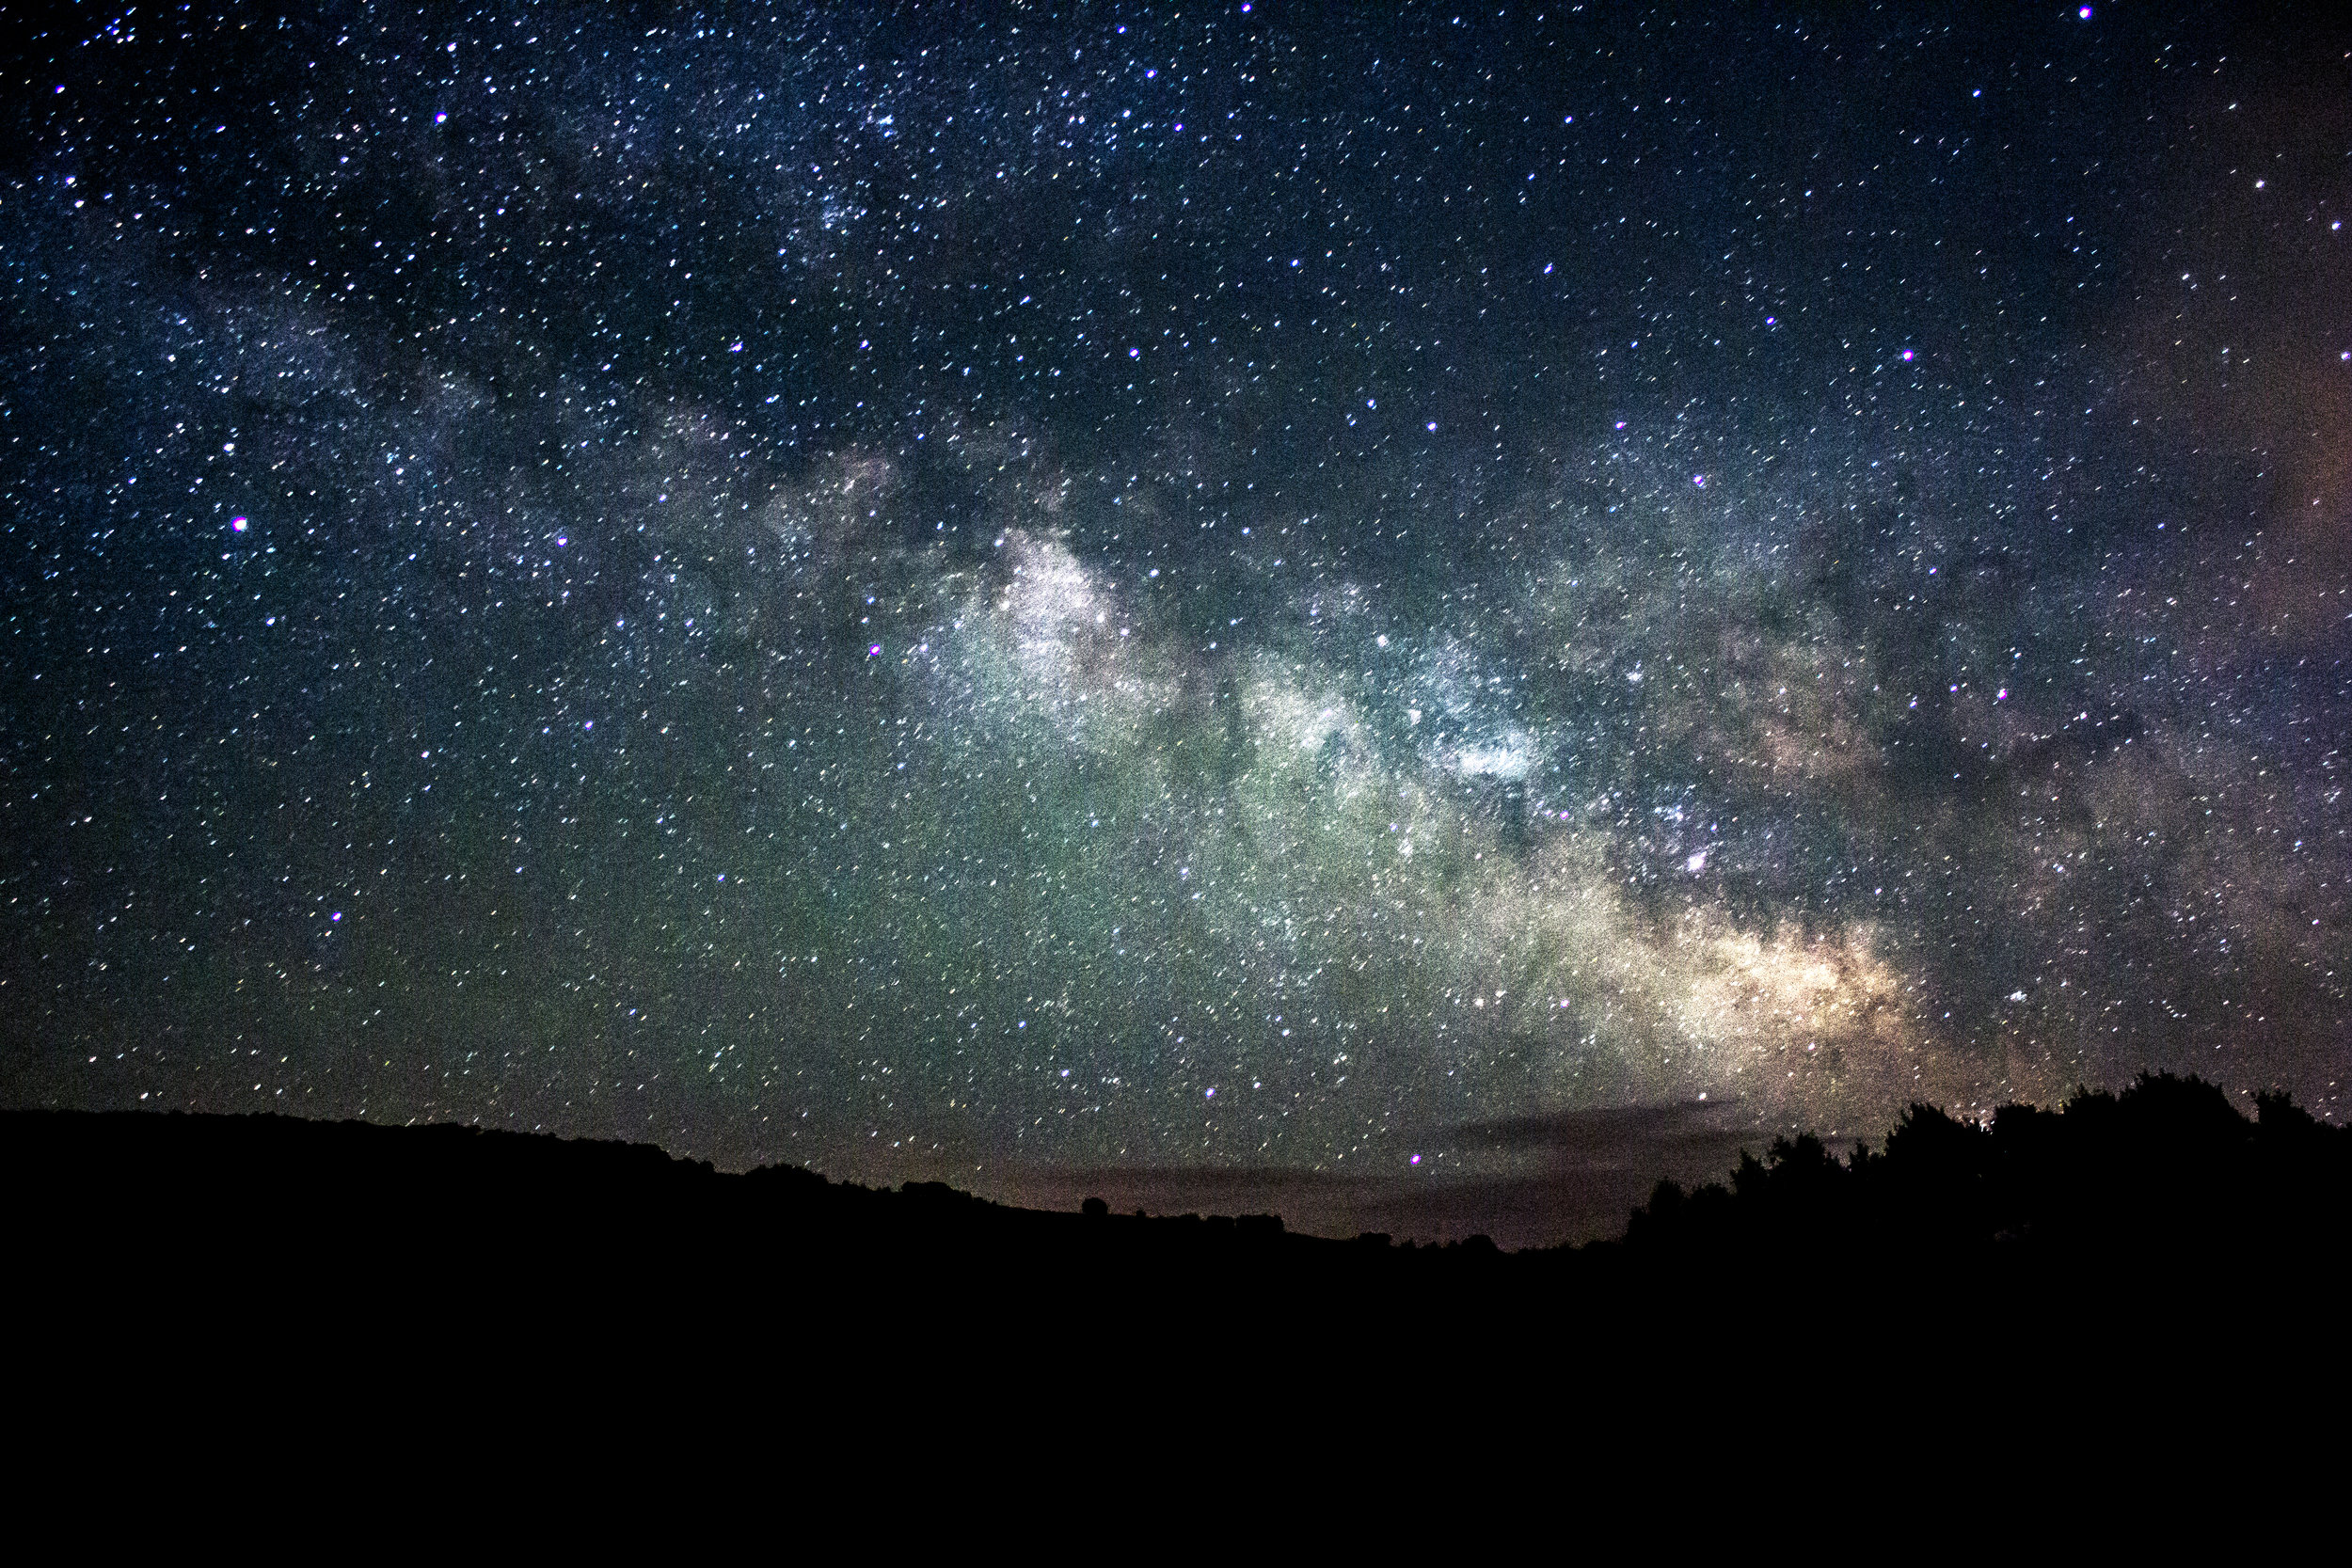 My first picture of the Milky Way. I shot this with a Canon T4i with a simple 18-55mm Kit lens. Aperture: f/3.5 Shutter: 20 seconds ISO: 1600